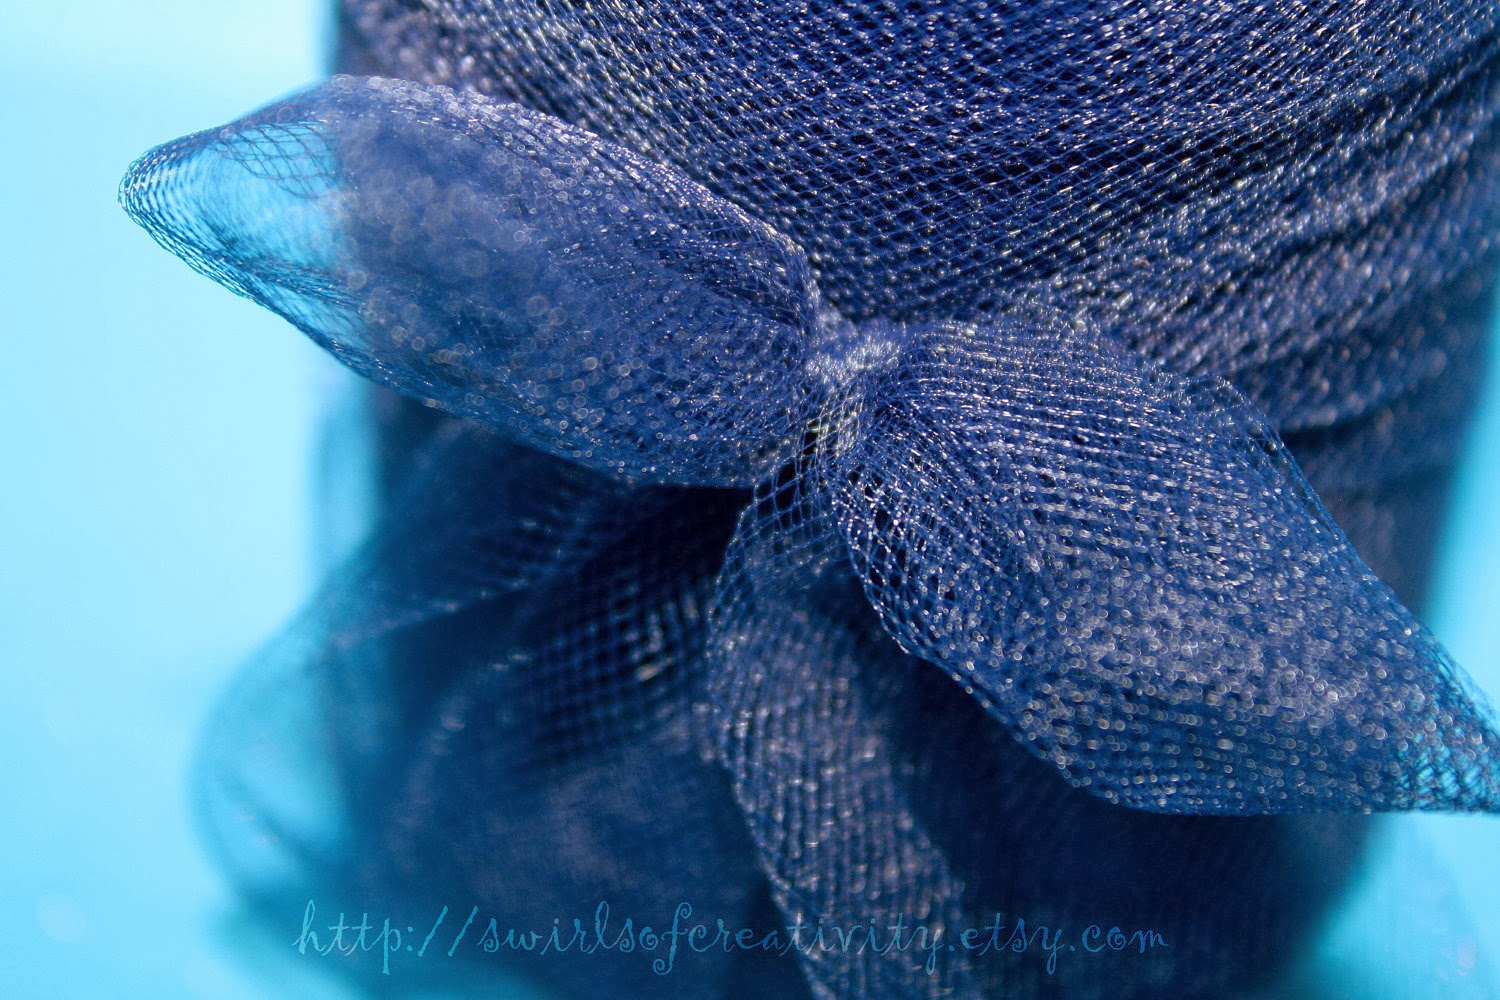 https://www.etsy.com/listing/108717032/mini-whale-song-blue-spool-roll-tulle